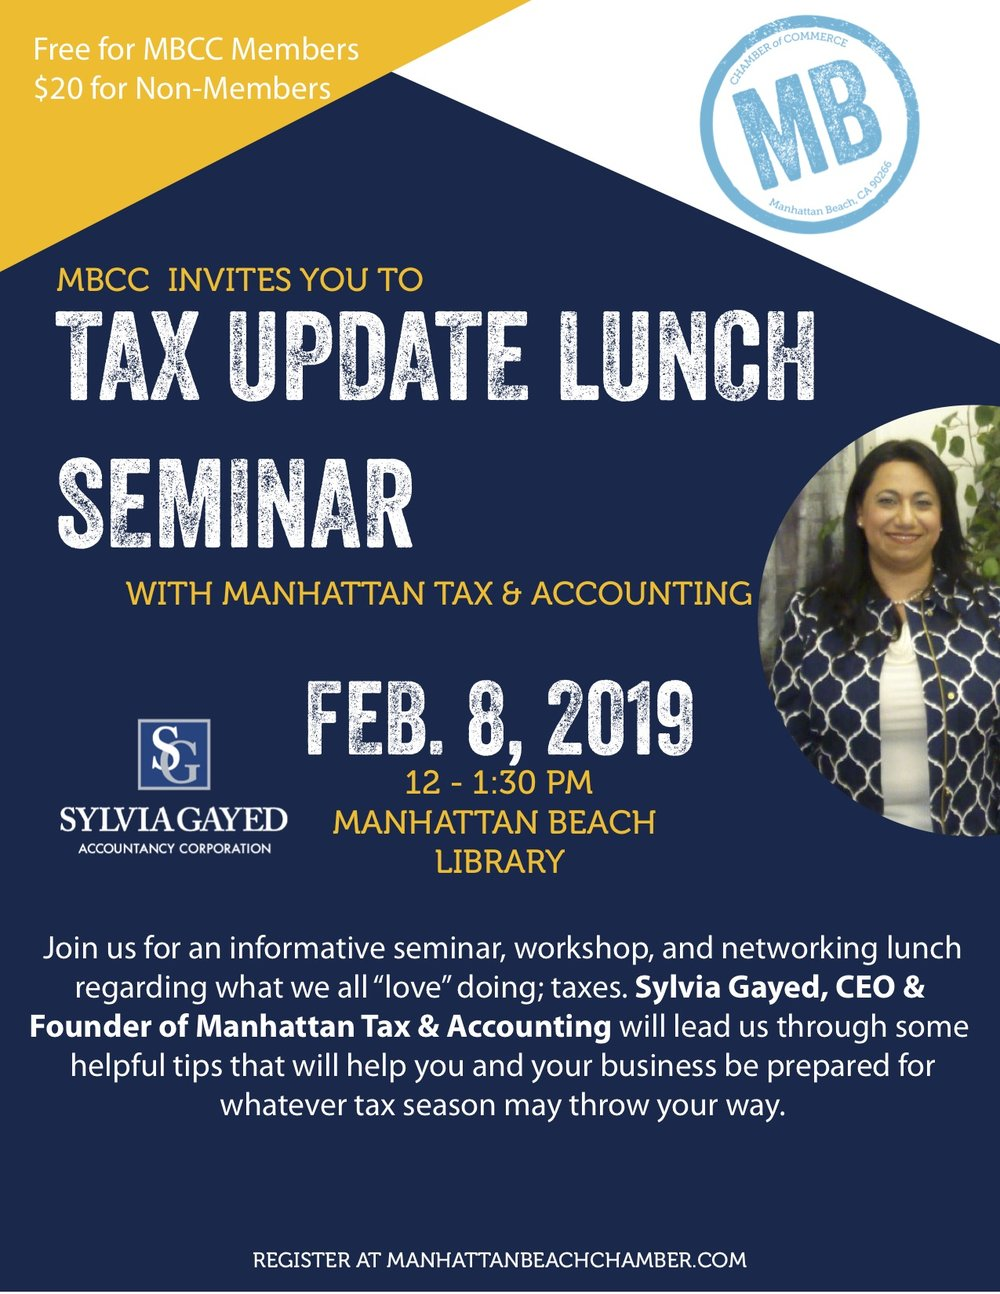 Tax Update Lunch Seminar